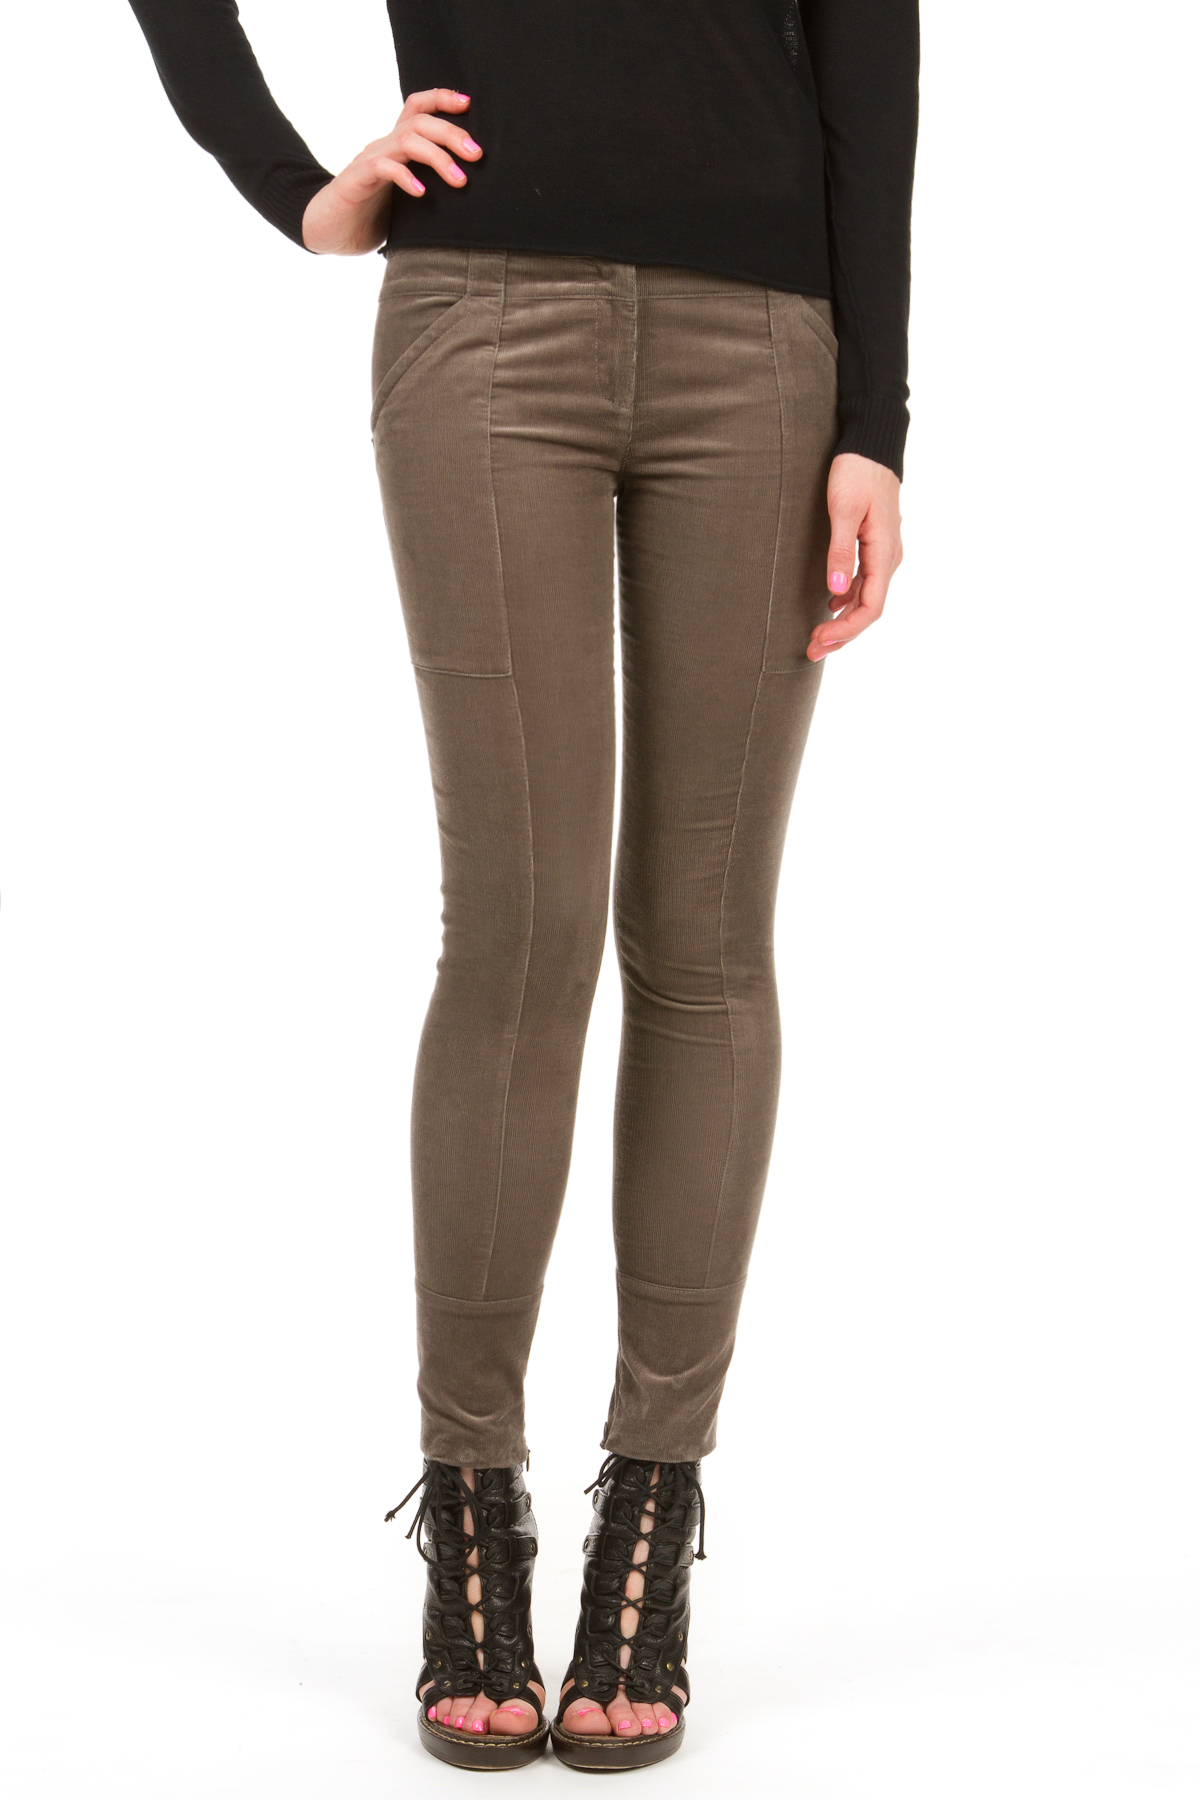 Perfect Burberry Brit Skinny Corduroy Pants Trade In Your Tired, Black Wool Pants For A Pair Of Dark Cords That Go With Everything Old Navy Womens BootCut Cords These Cords Are As Flattering As They Are Affordable Theres Almost No Excuse Not